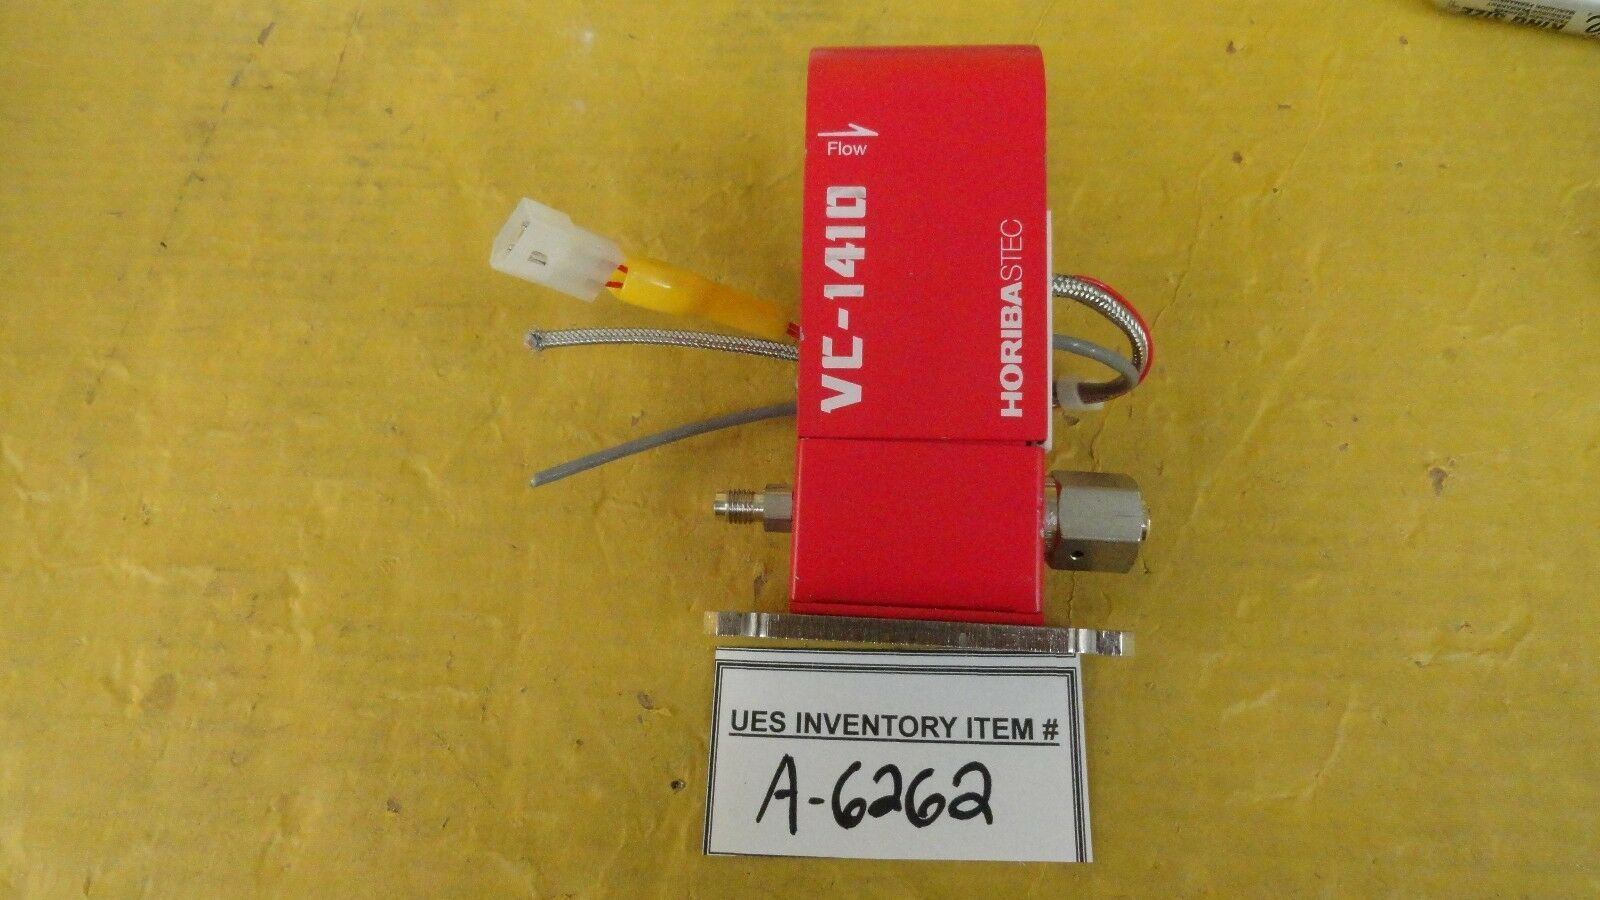 Horiba STEC VC-1410 Injection Valve 200 SCCM BTBAS Used